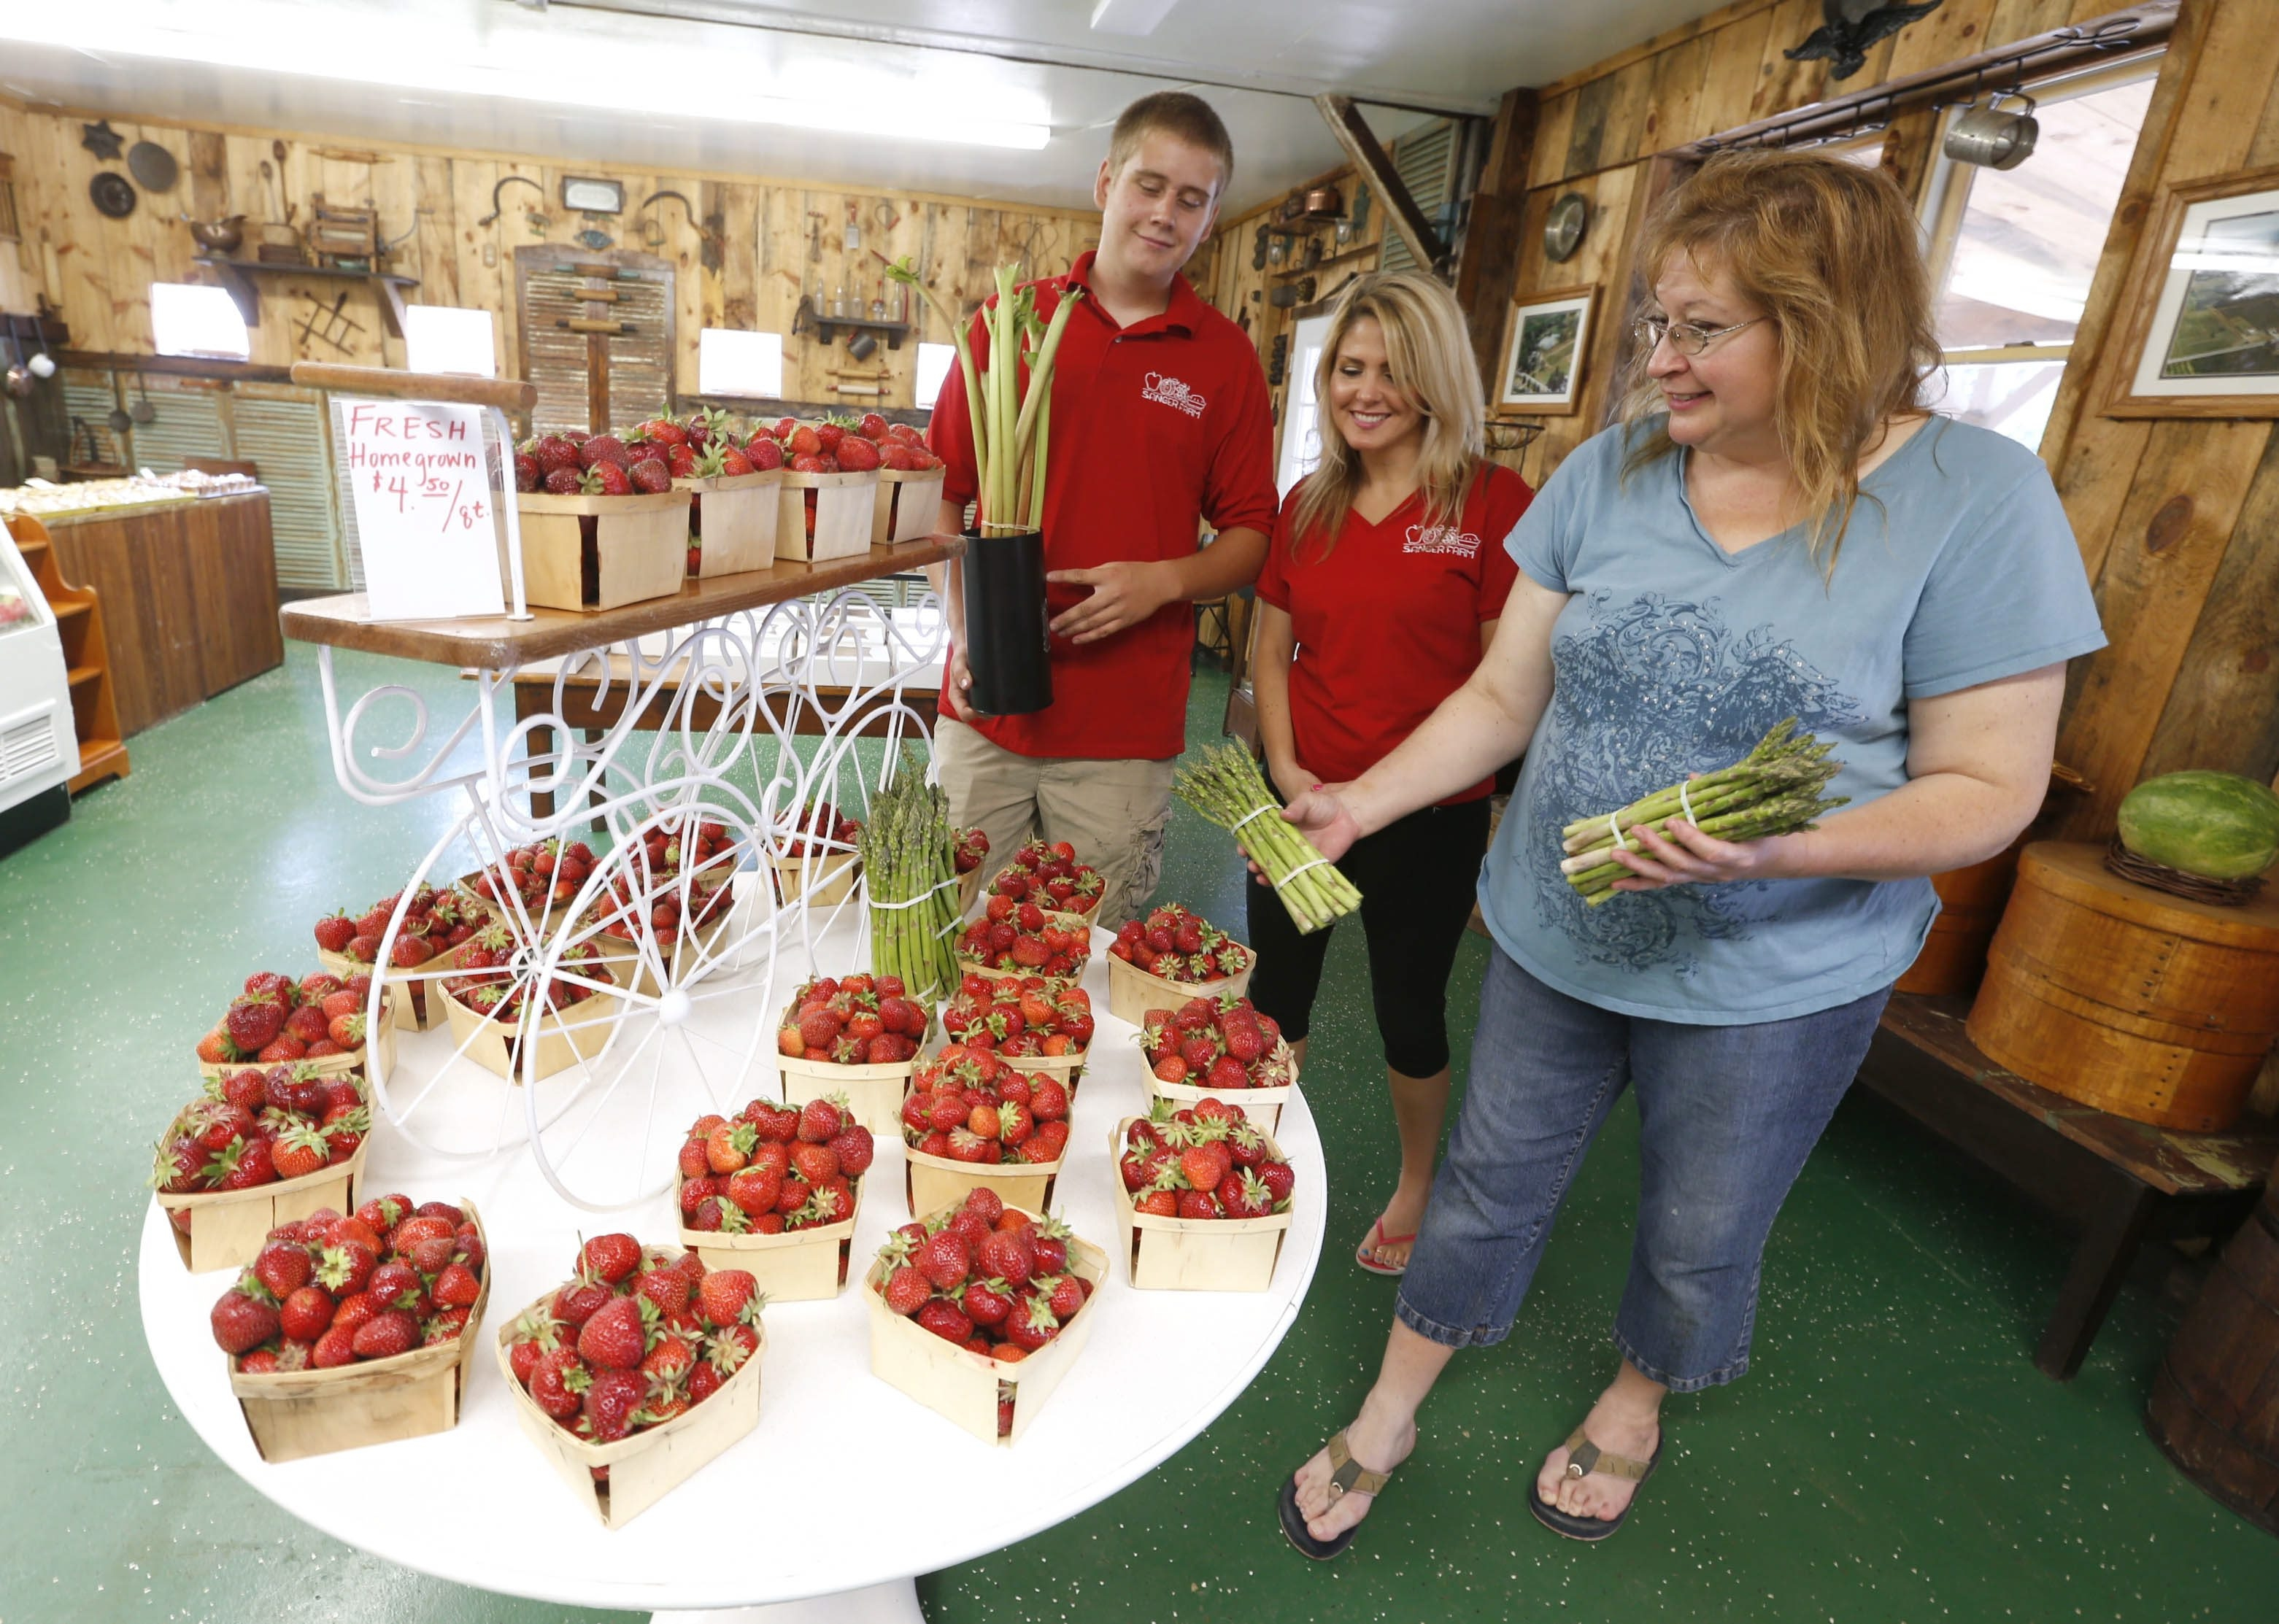 Sanger Farms owner  Sandra Tuck, right, with some fresh picked strawberries and asparagus. She is with her children Shari Posa, center, and Claitan Tuck at their Youngstown store.